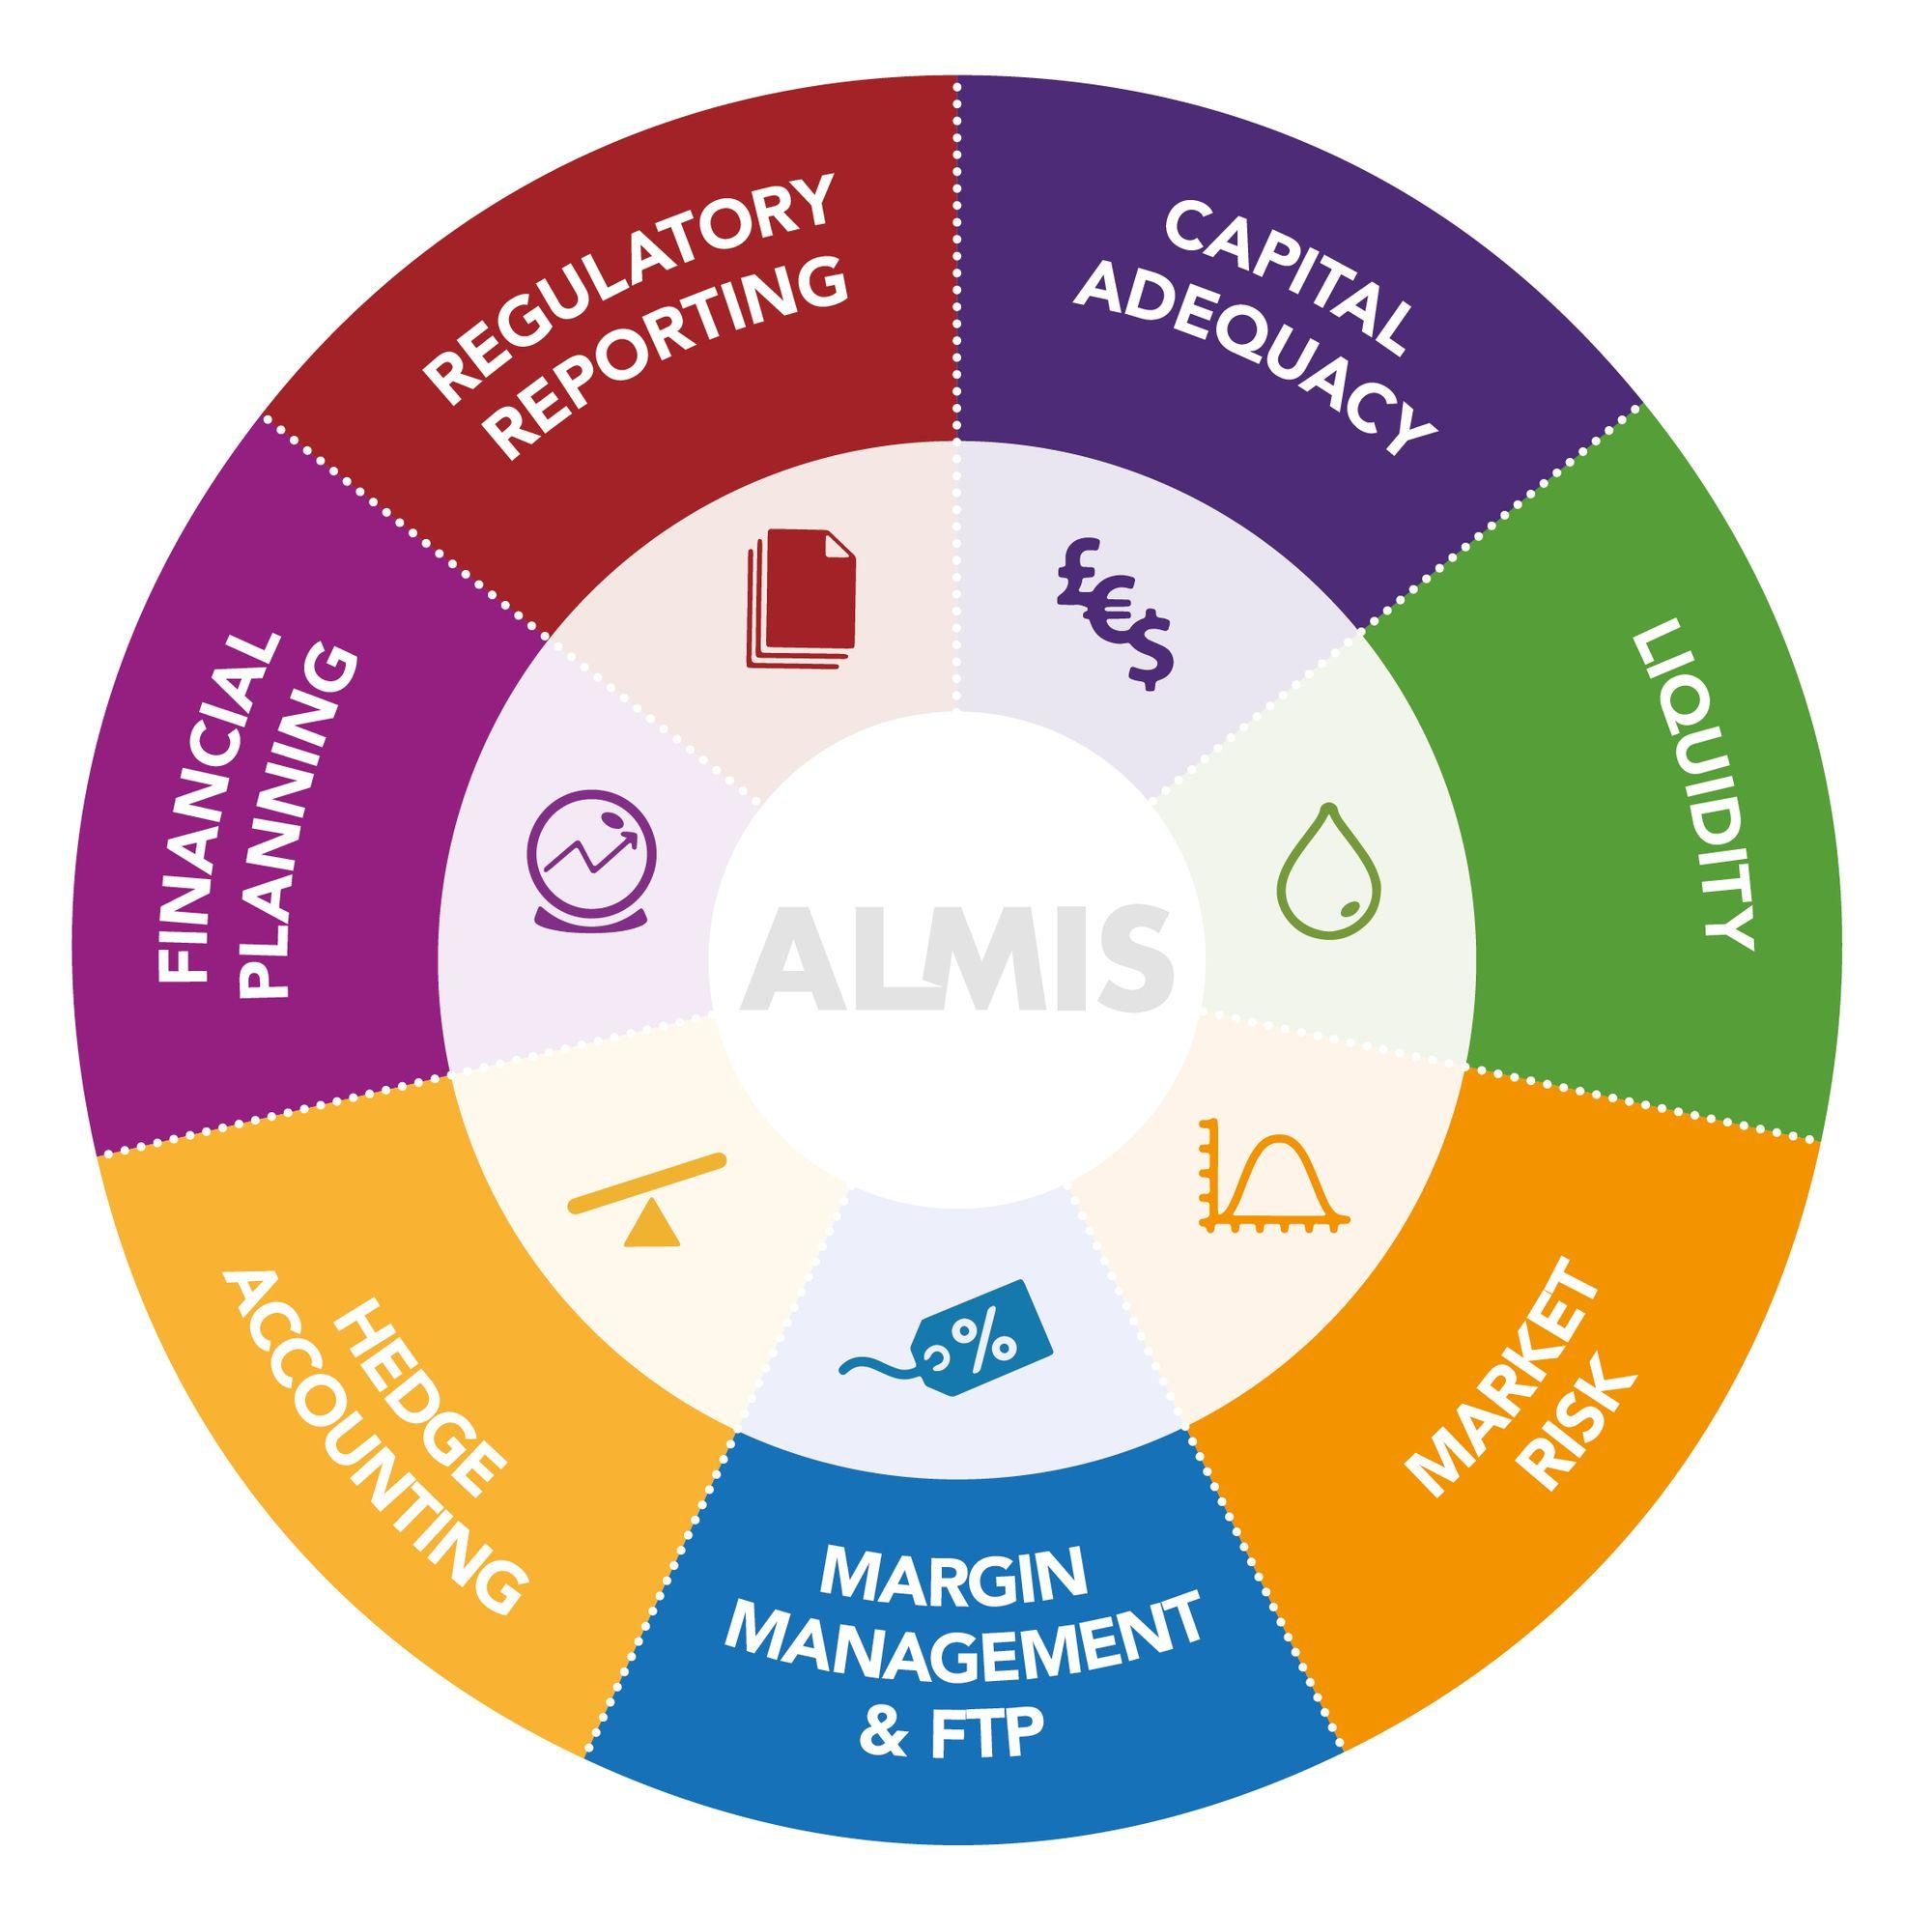 Wheel chart depicting Almis at the centre of regulatory reporting, capital adequacy, liquidity, market risk, margin management & FTP, hedge accounting, and financial planning.